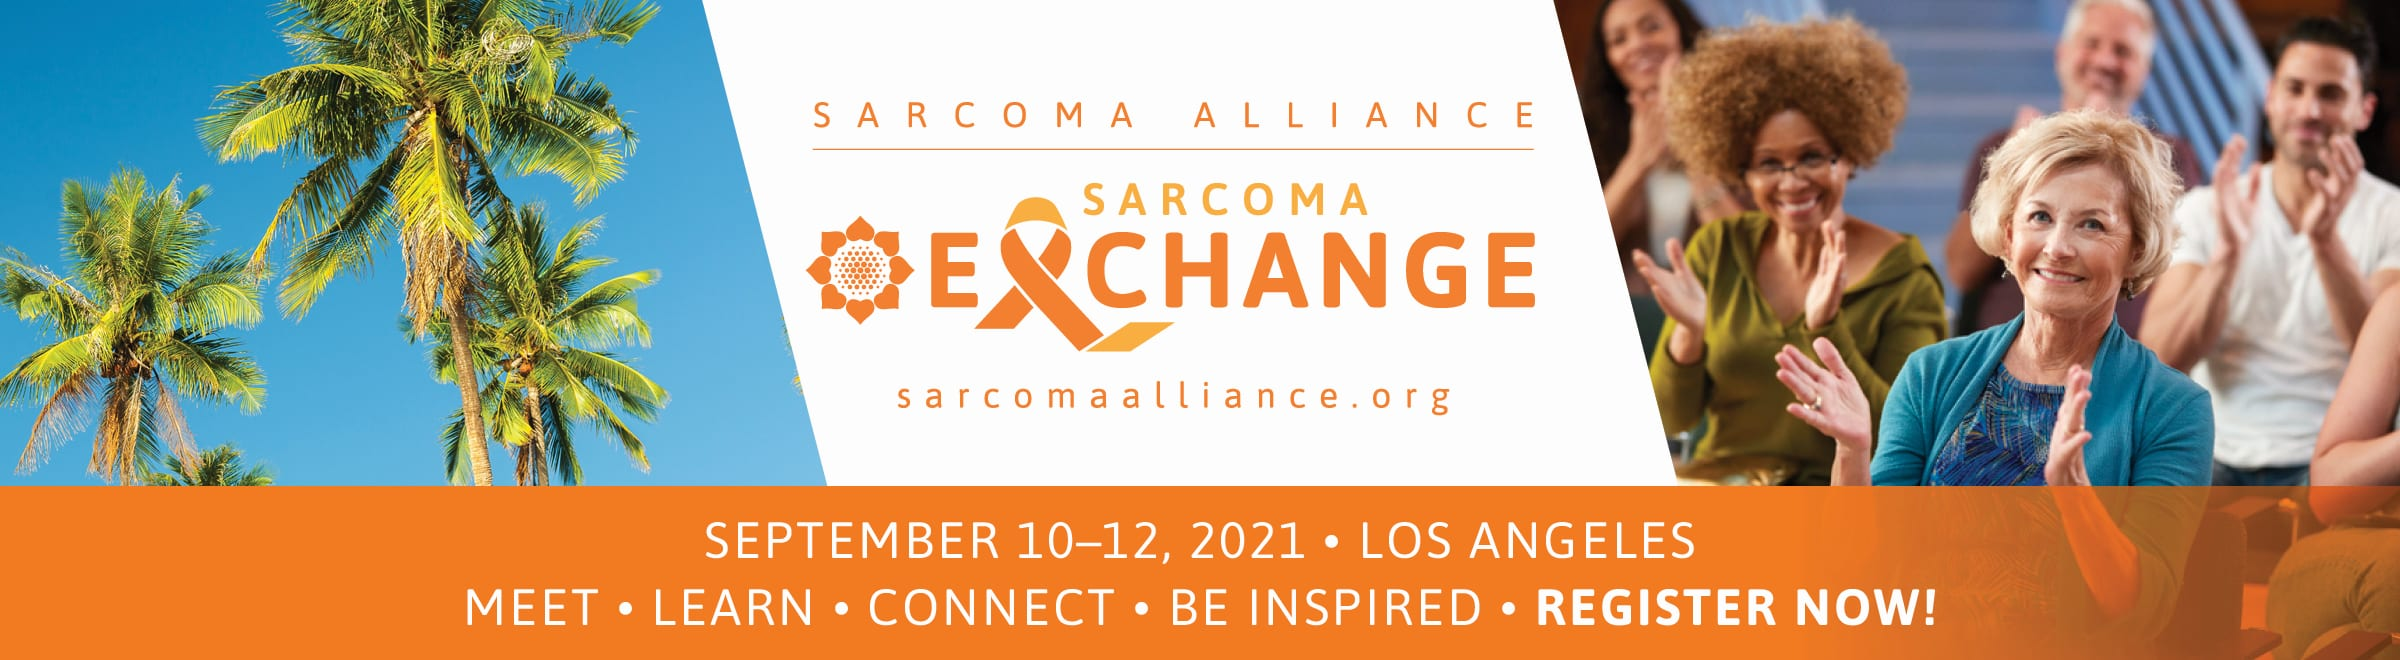 Sarcoma Exchange coming in September 2021